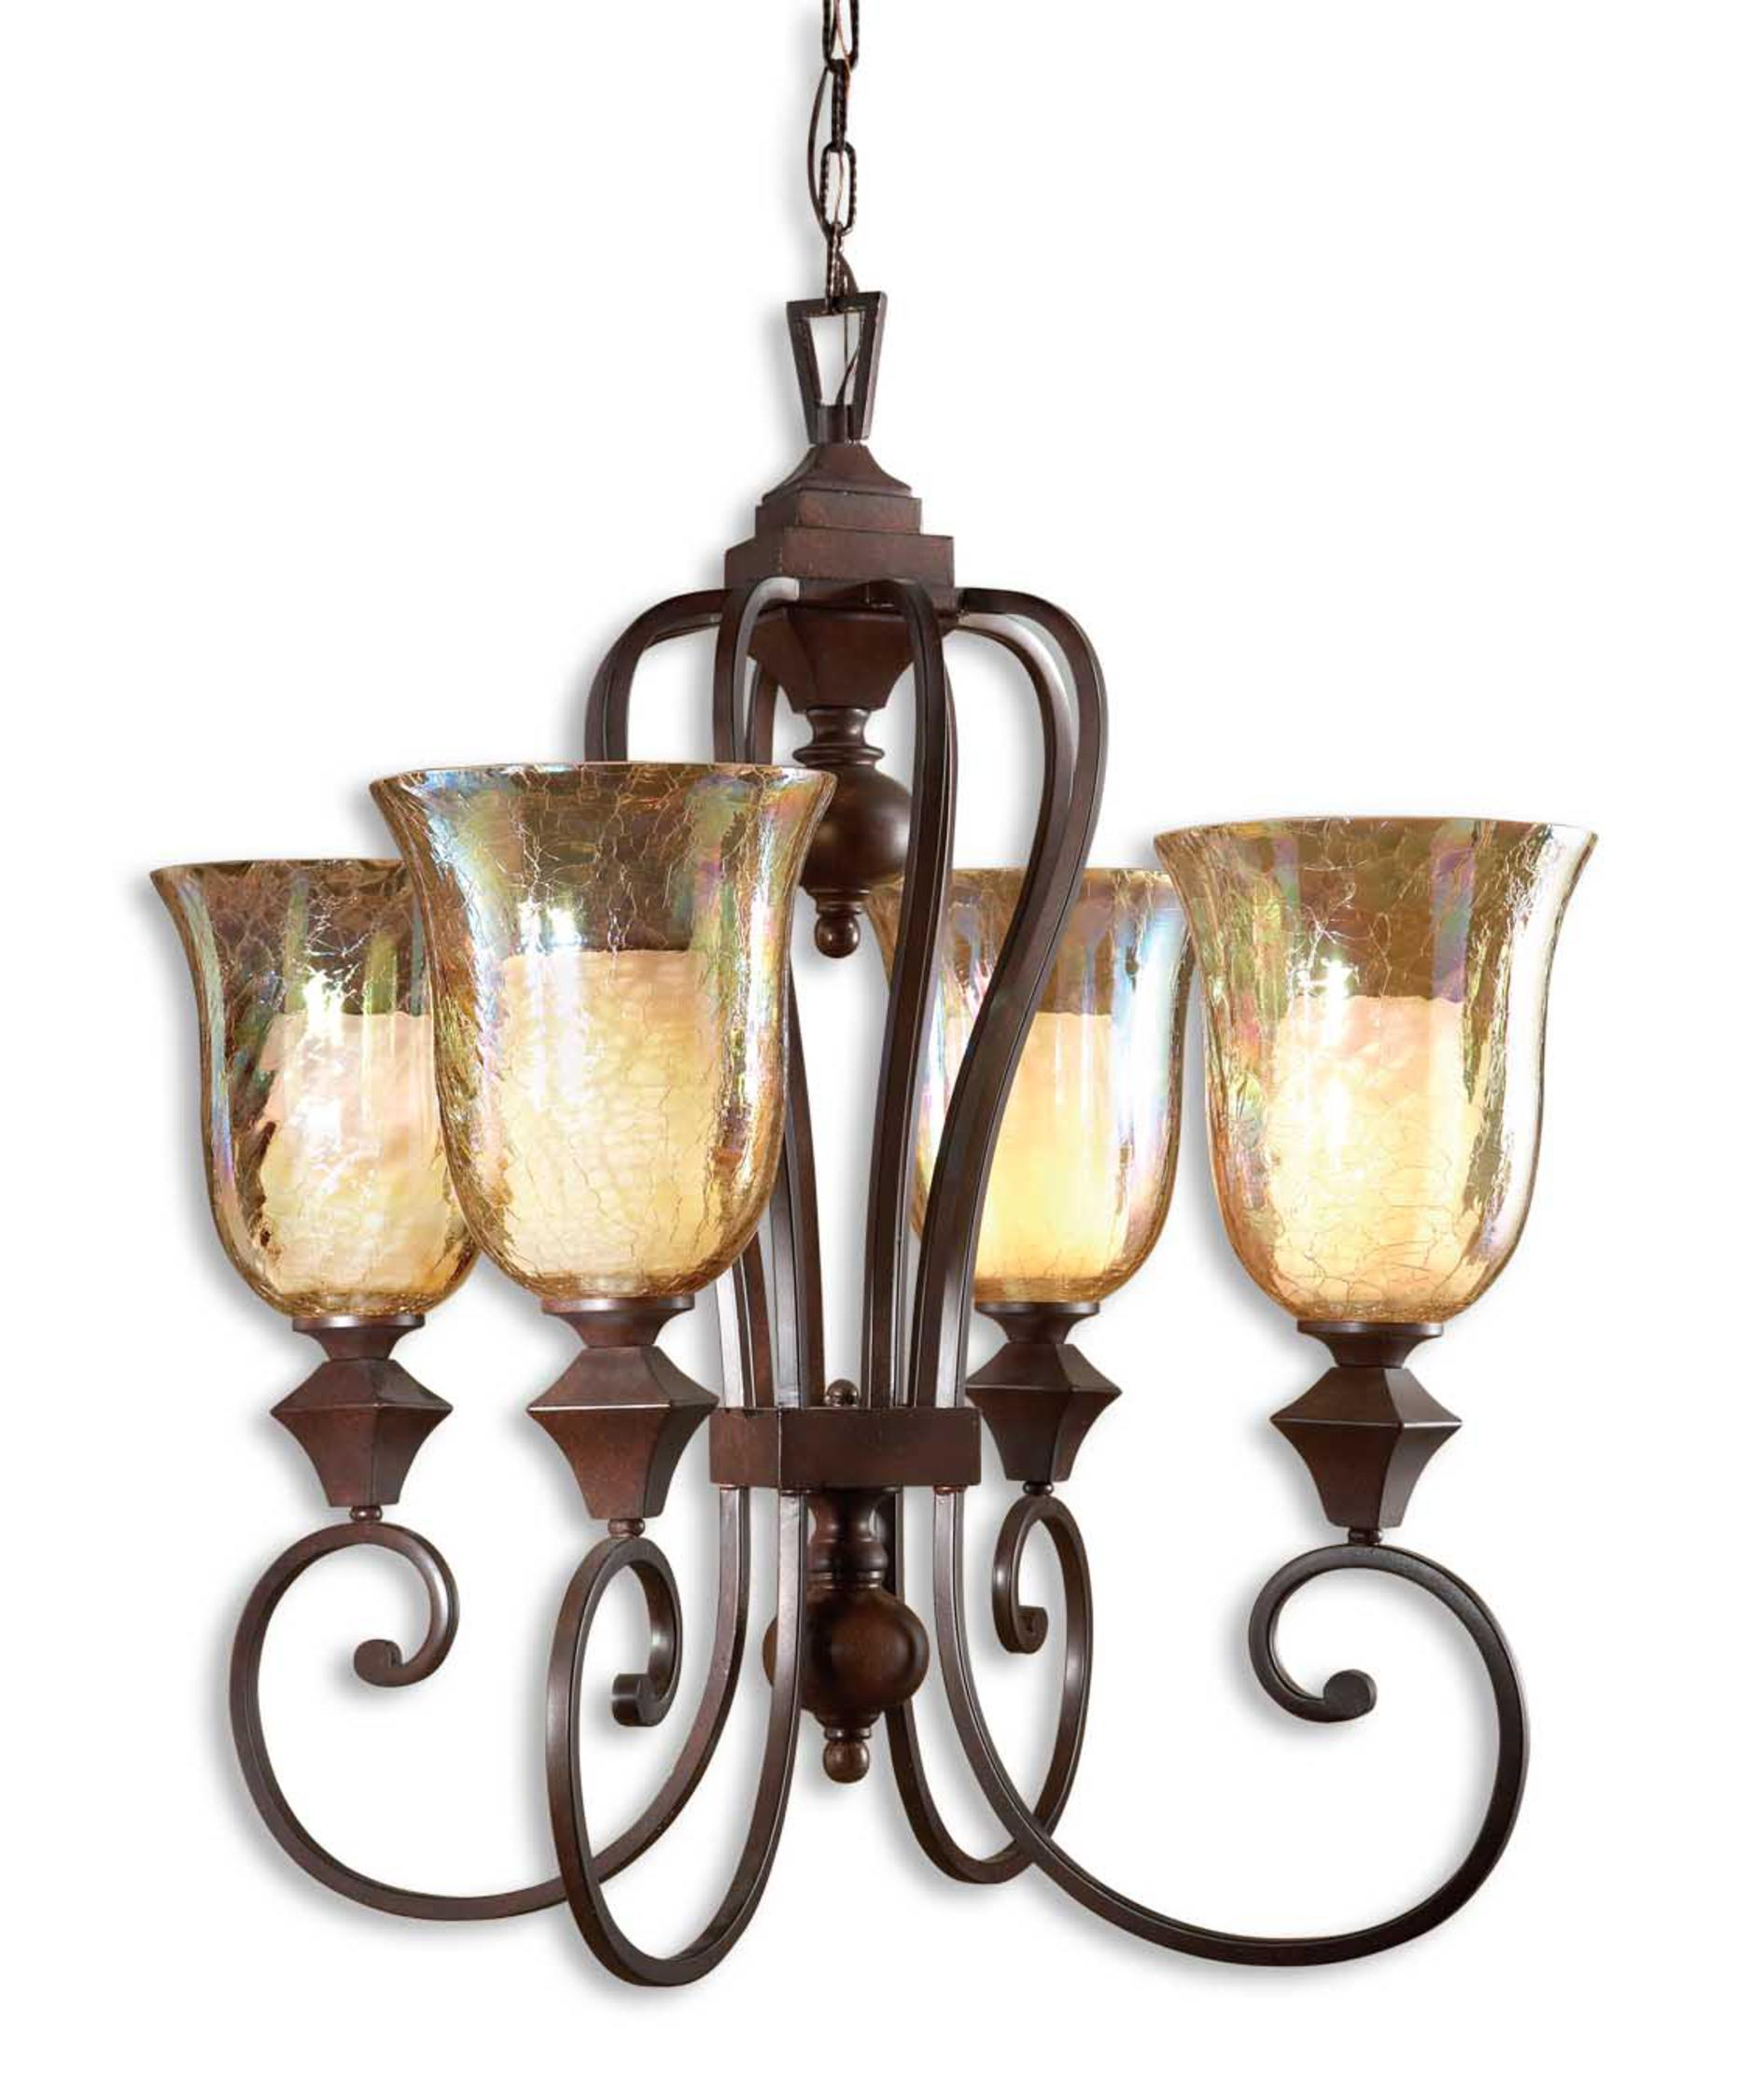 shown in spice finish and iridescent crackle glass - Uttermost Lighting